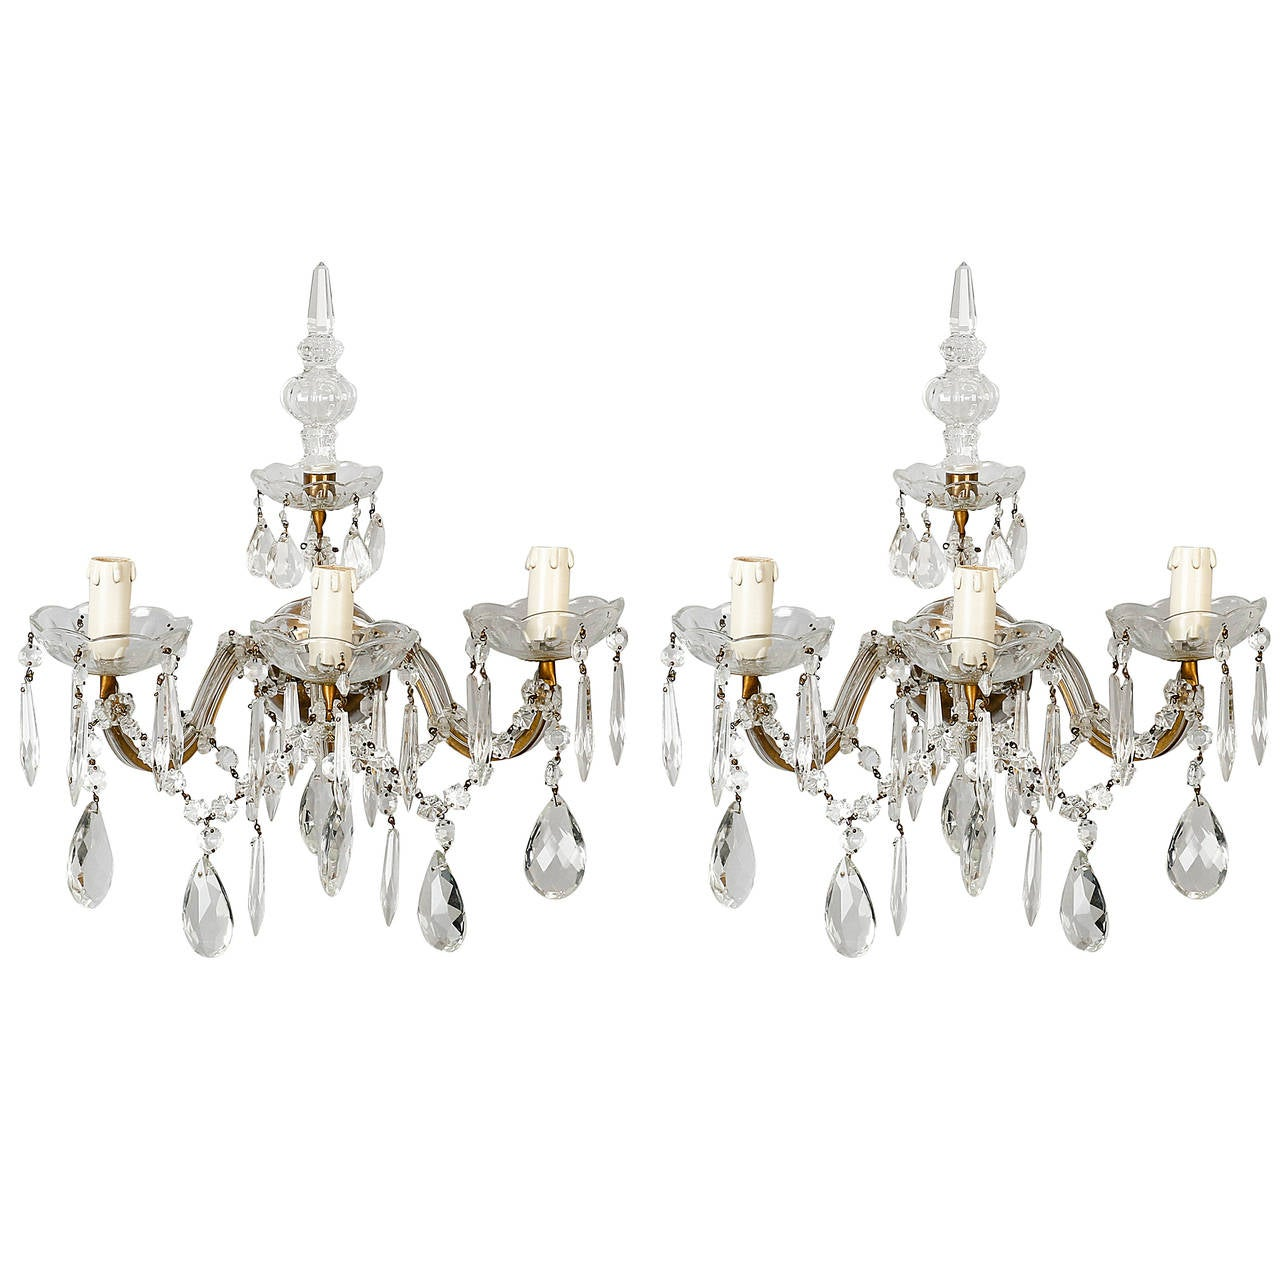 Pair of Maria Theresa Three-Light Sconces with Crystal Finial